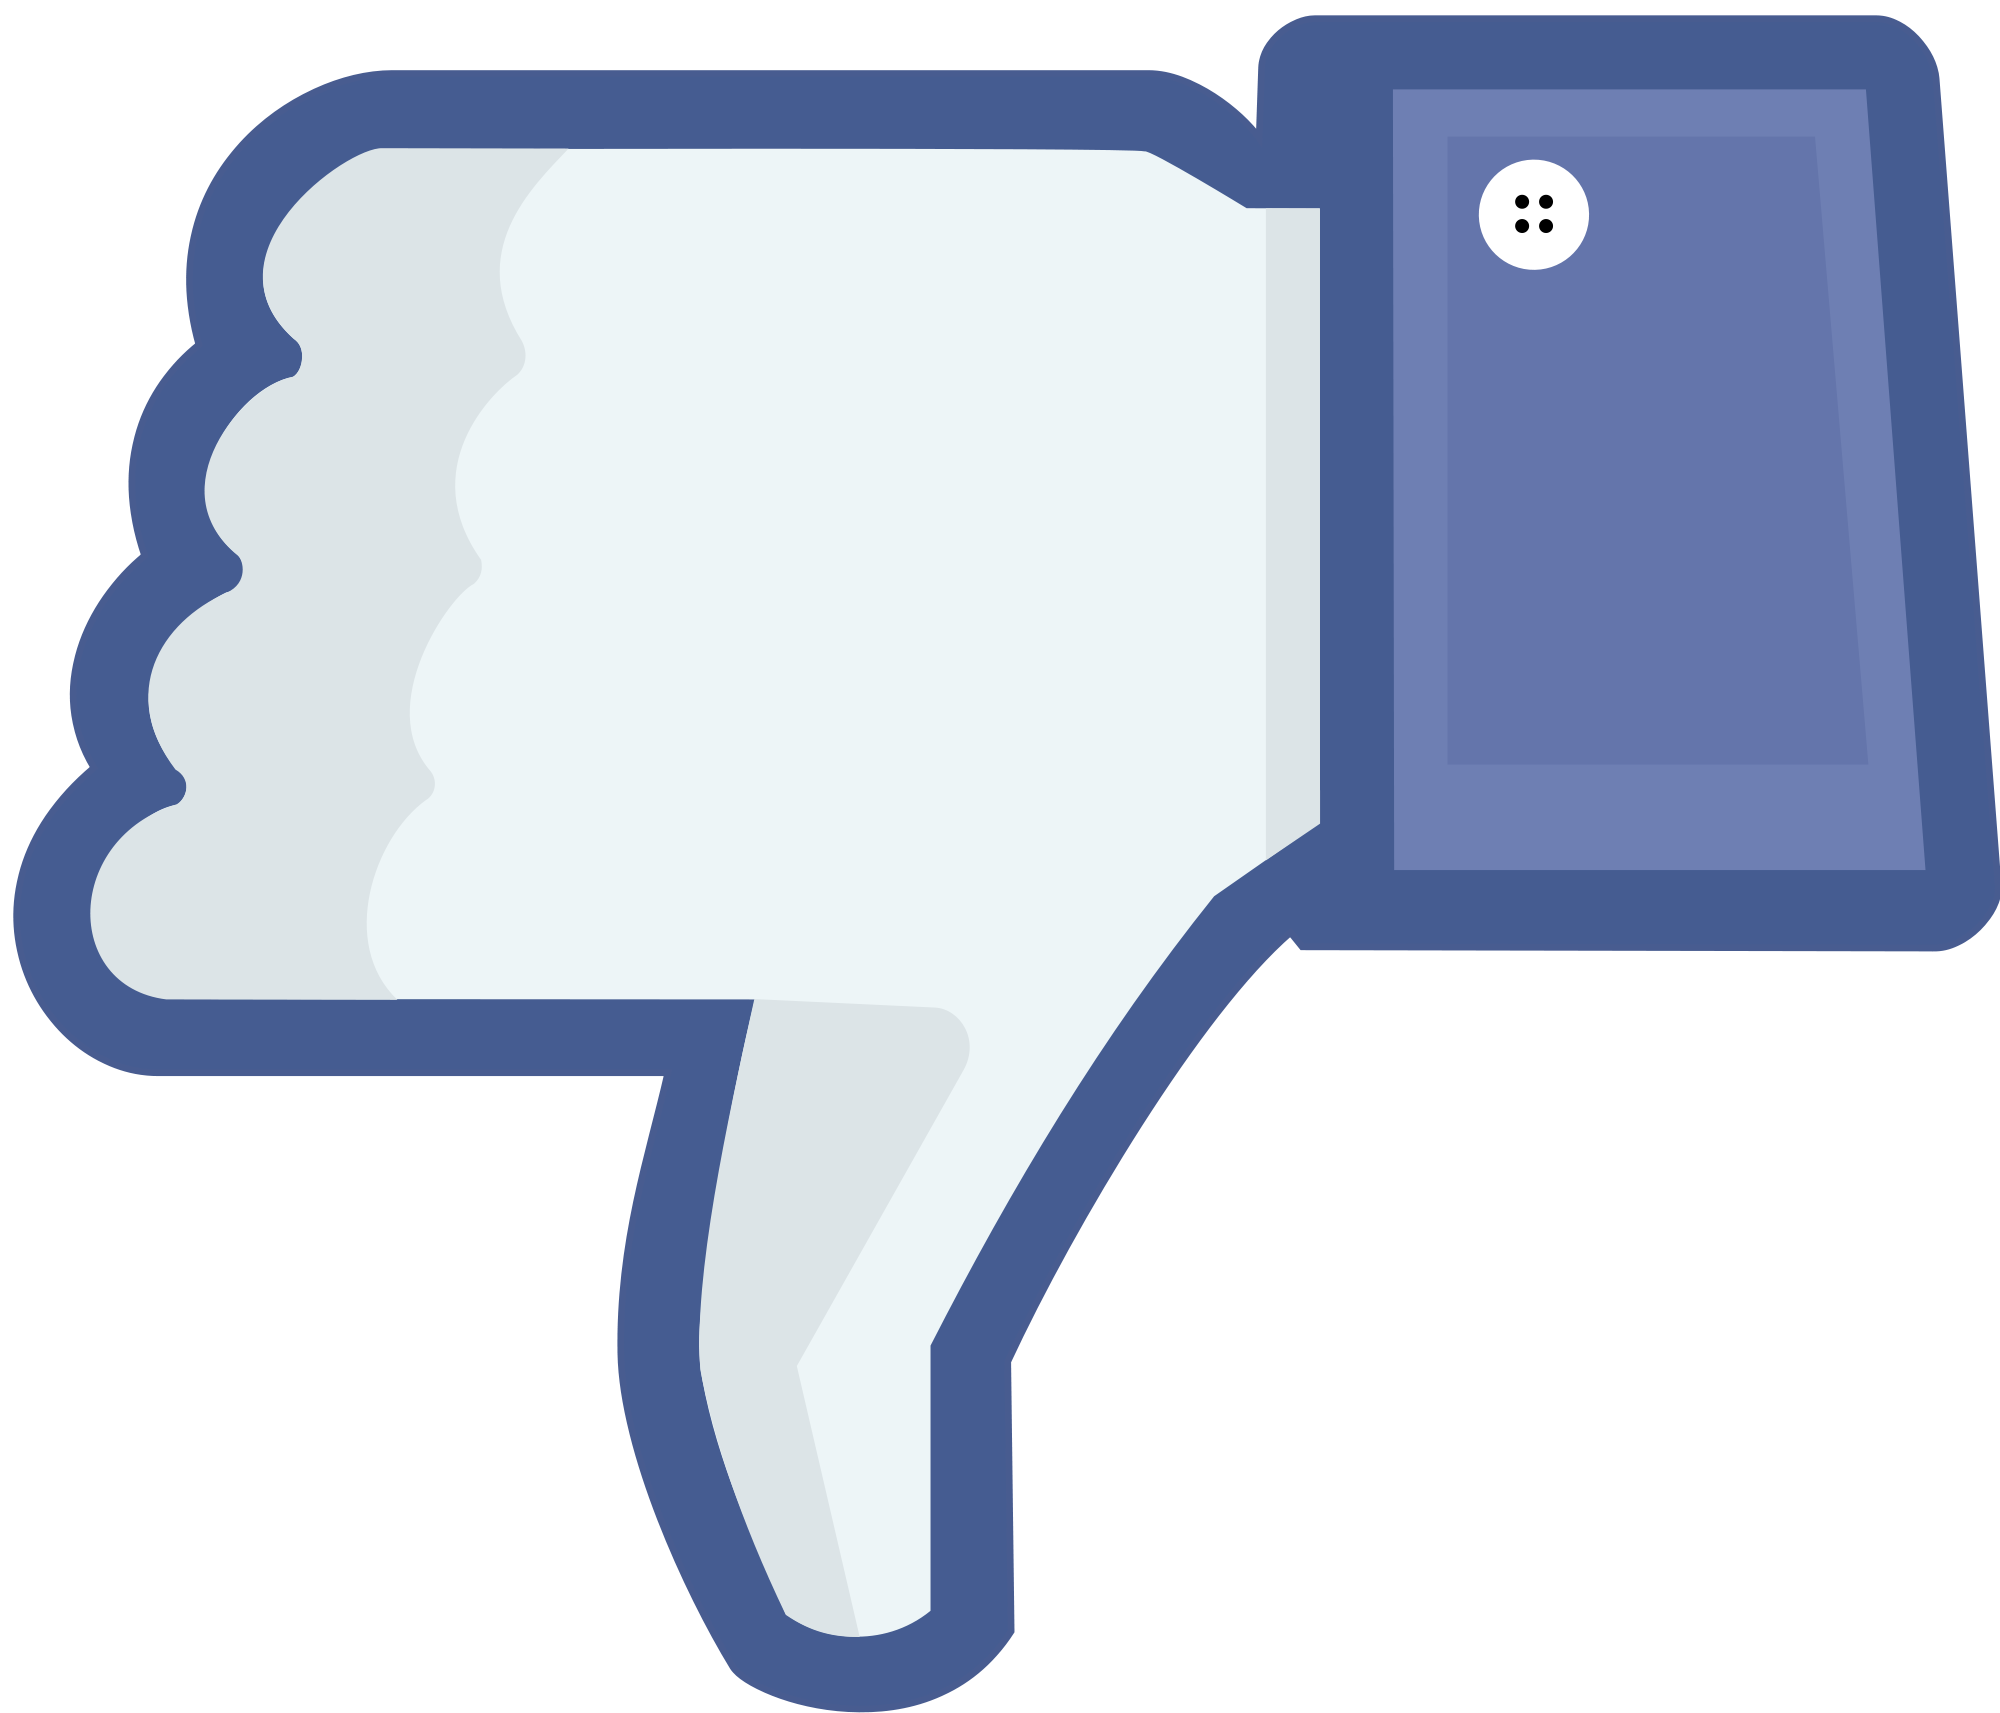 Facebook Not Like Thumbs Down Wikipedia The Free Encyclopedia